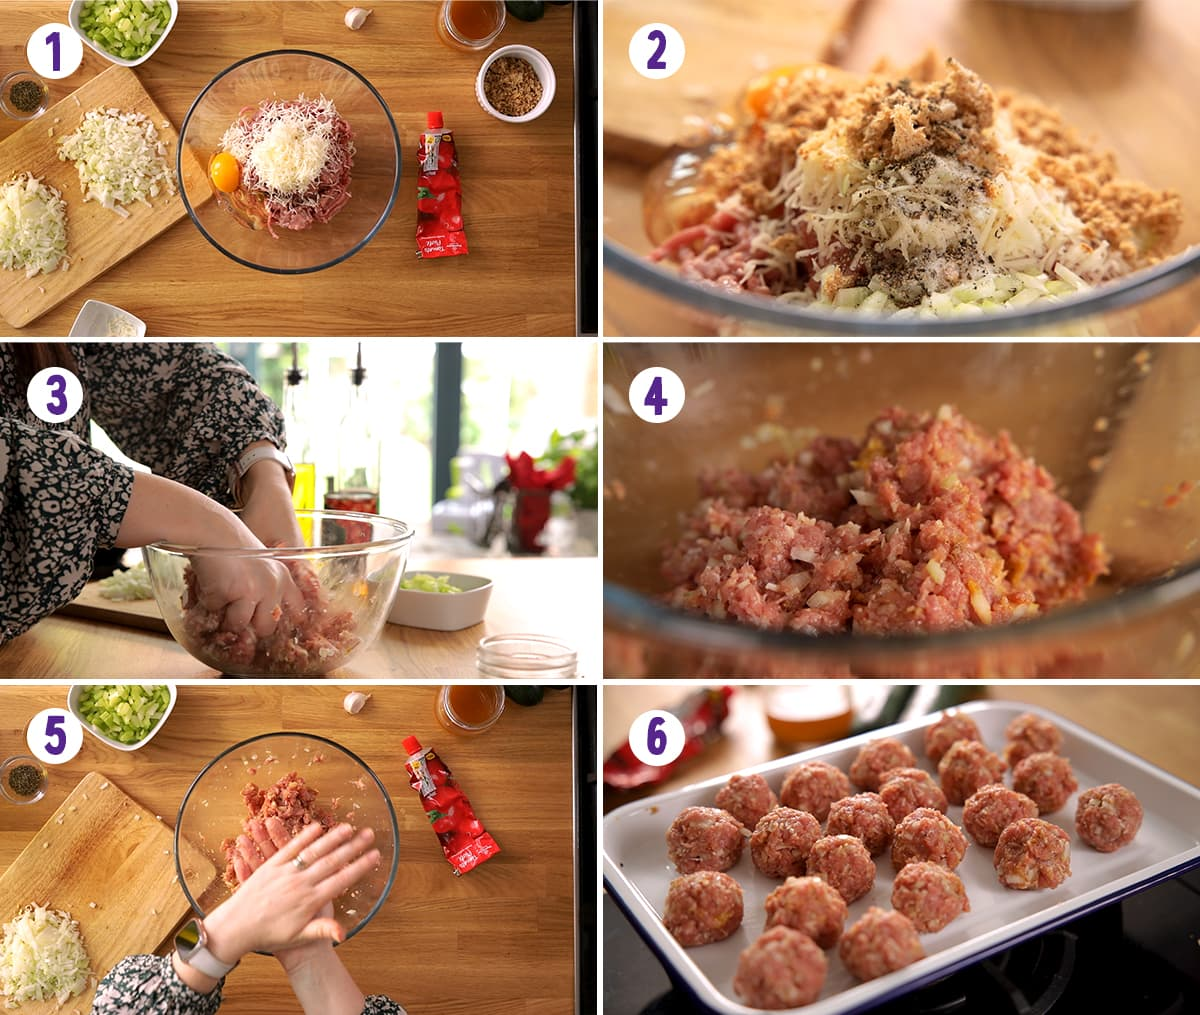 6 image collage showing initial steps for making turkey meatballs